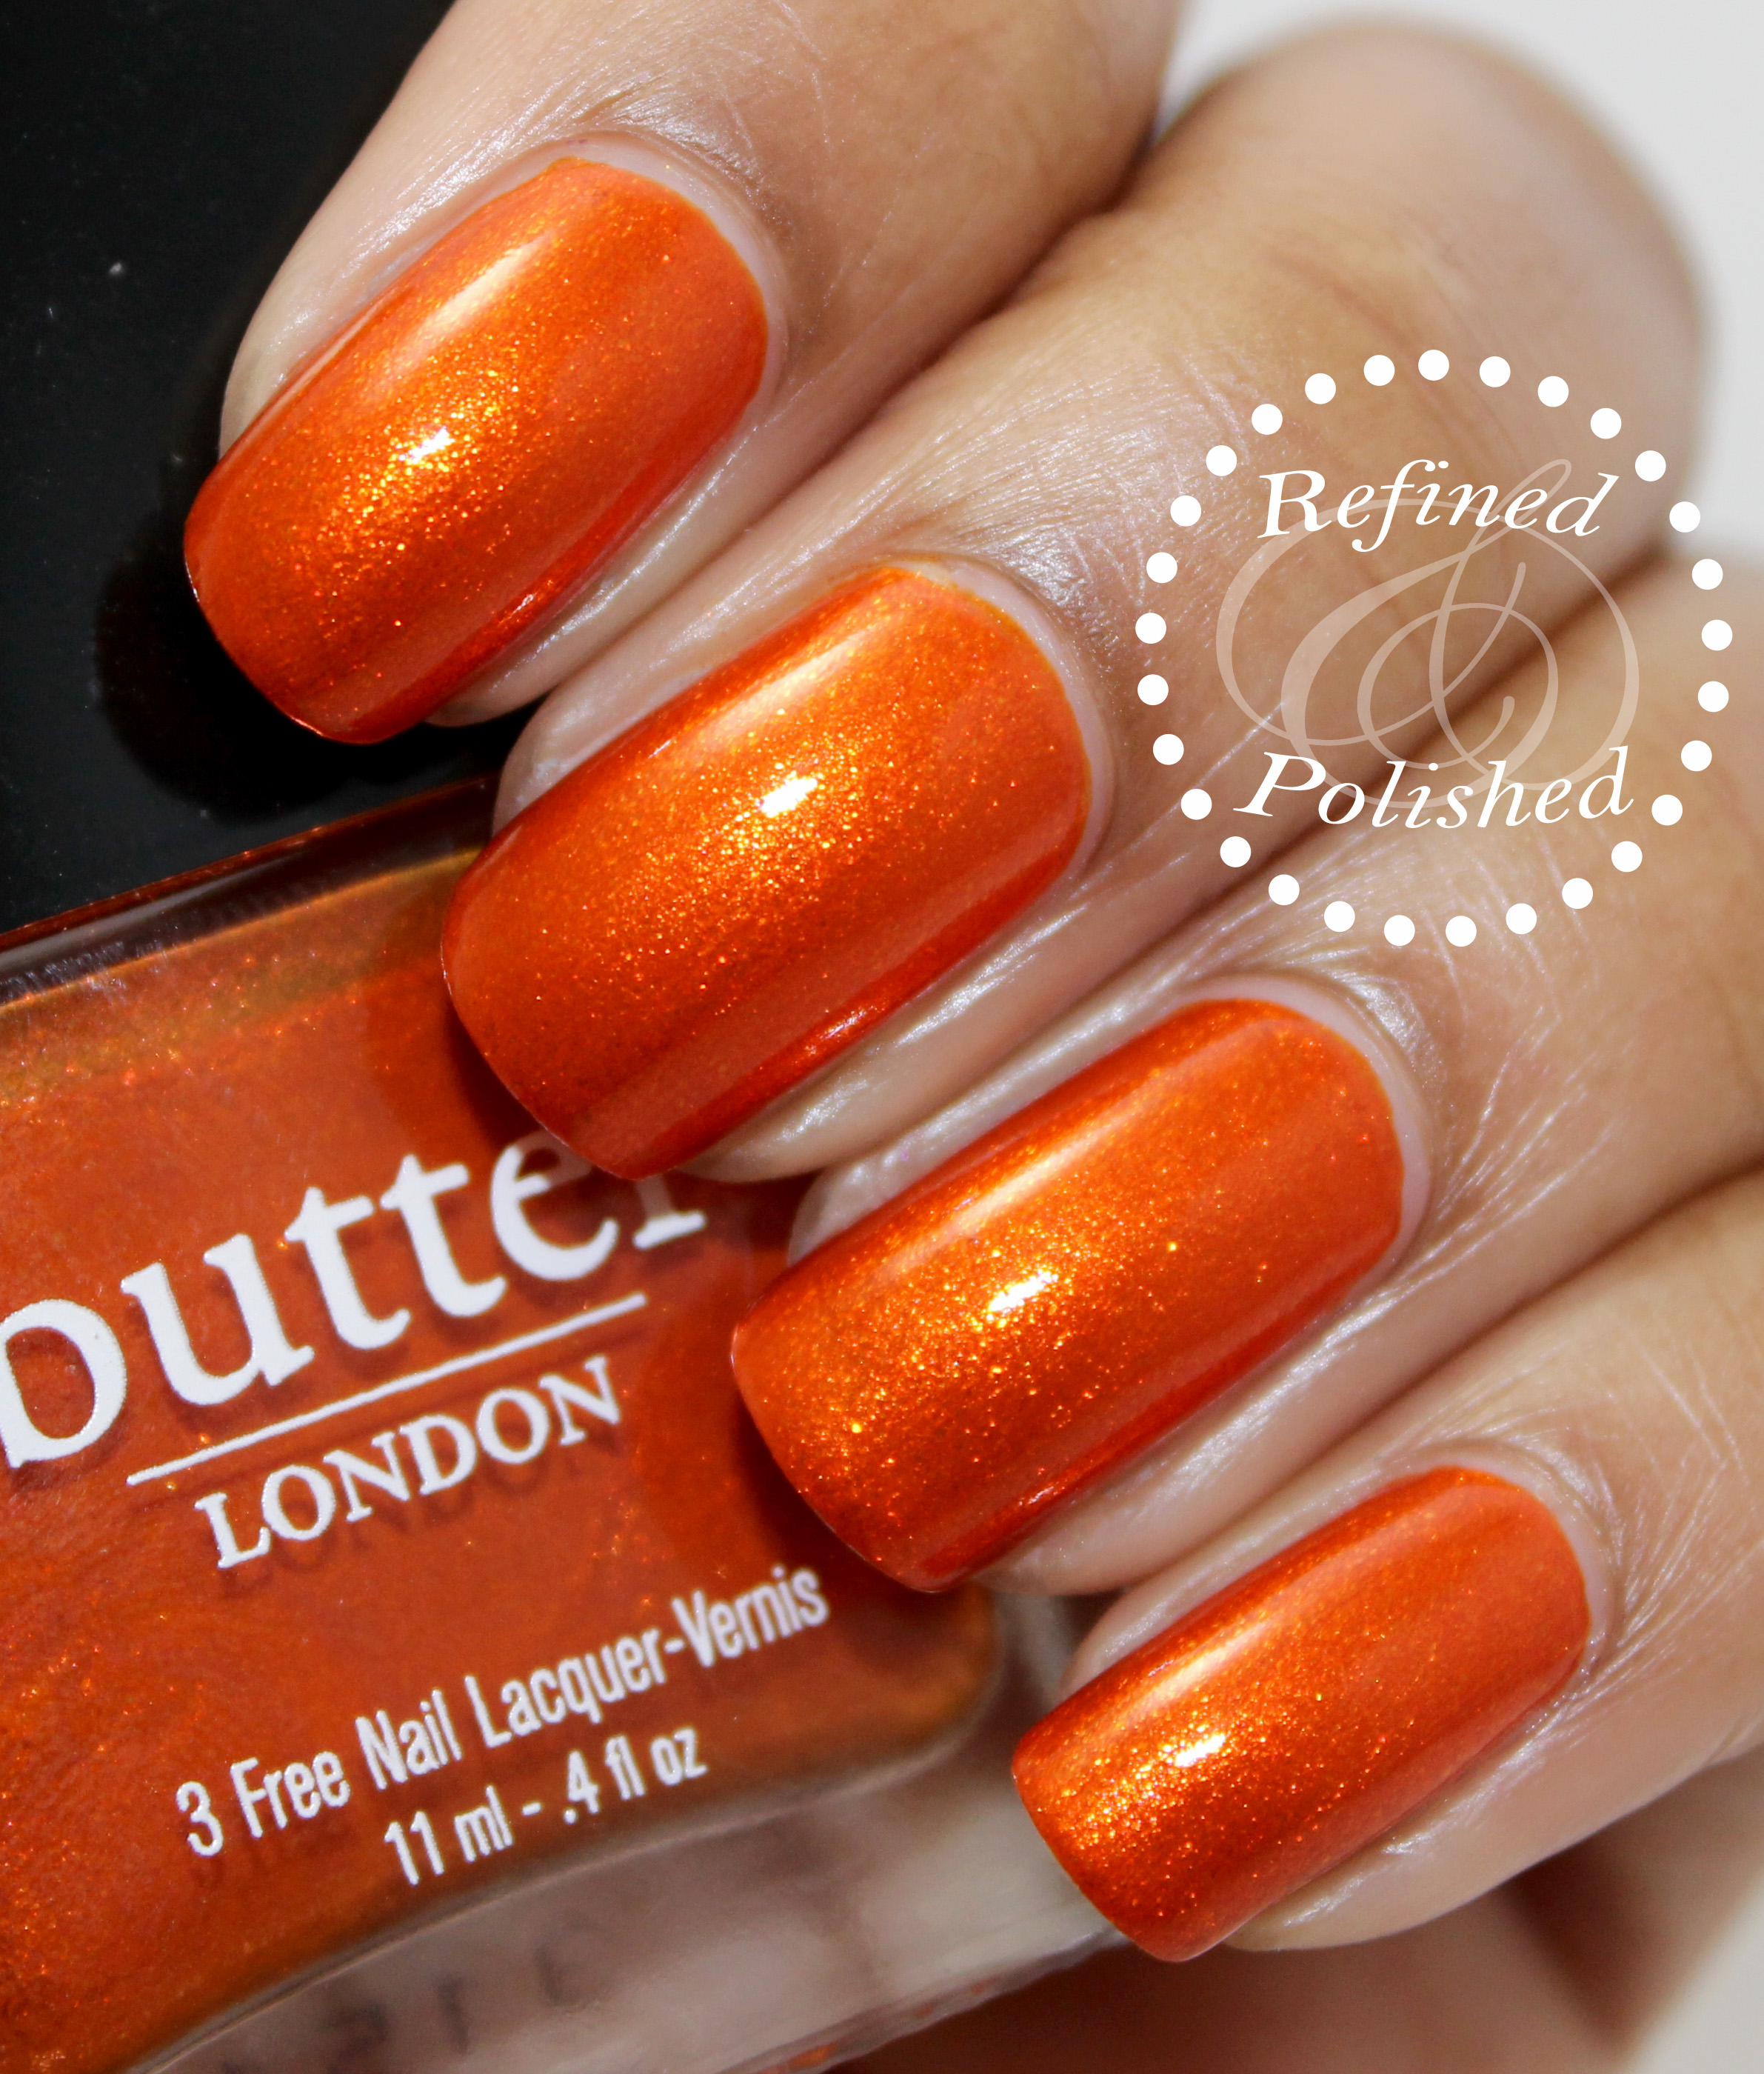 Butter London Sunbaker - Refined and Polished